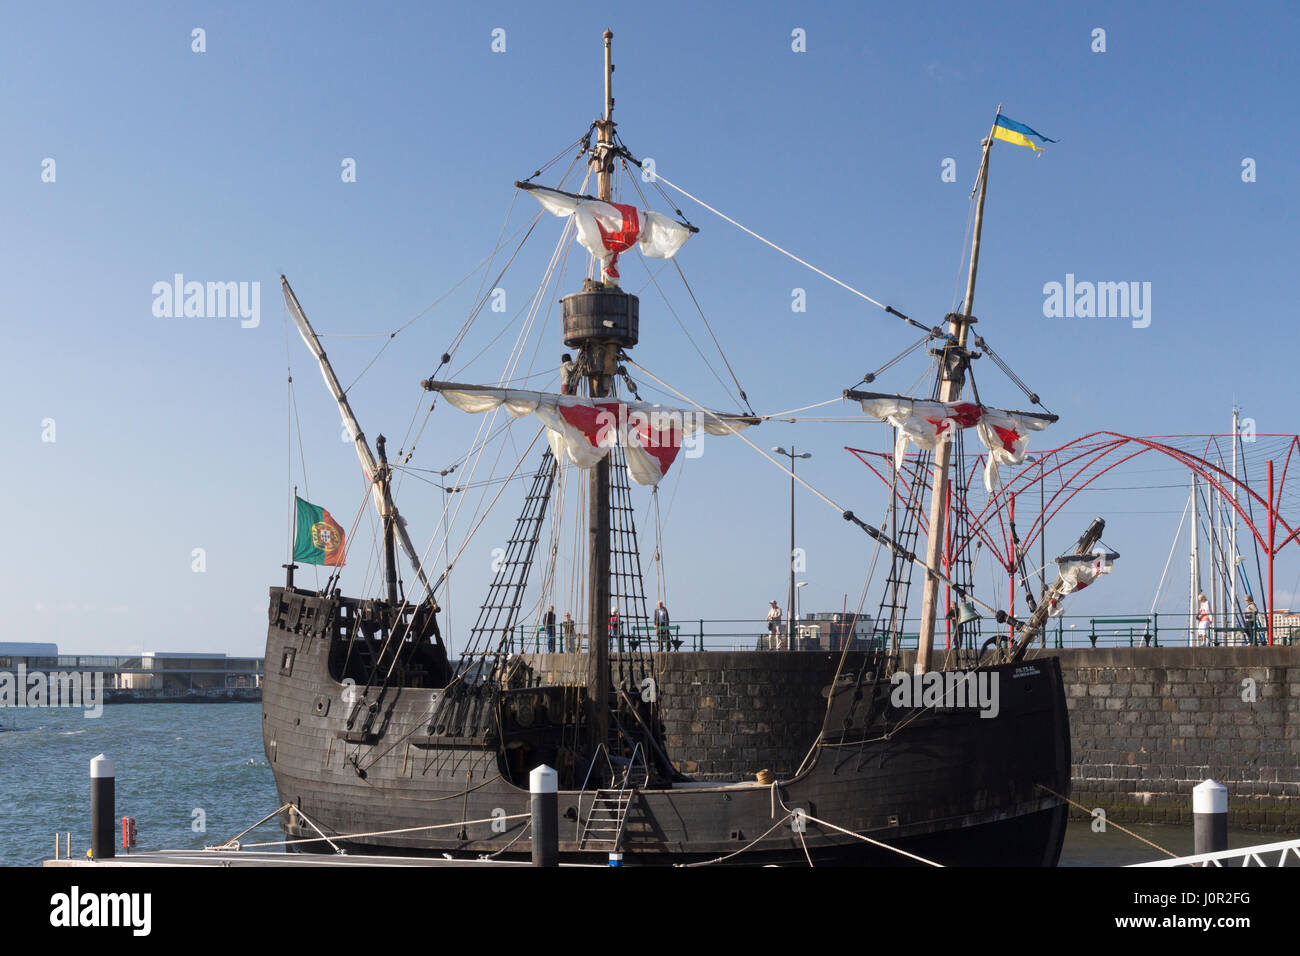 Tourists look on as the replica Santa Maria de Colombo is outfitted for a  trip out 120cd950e9e7c